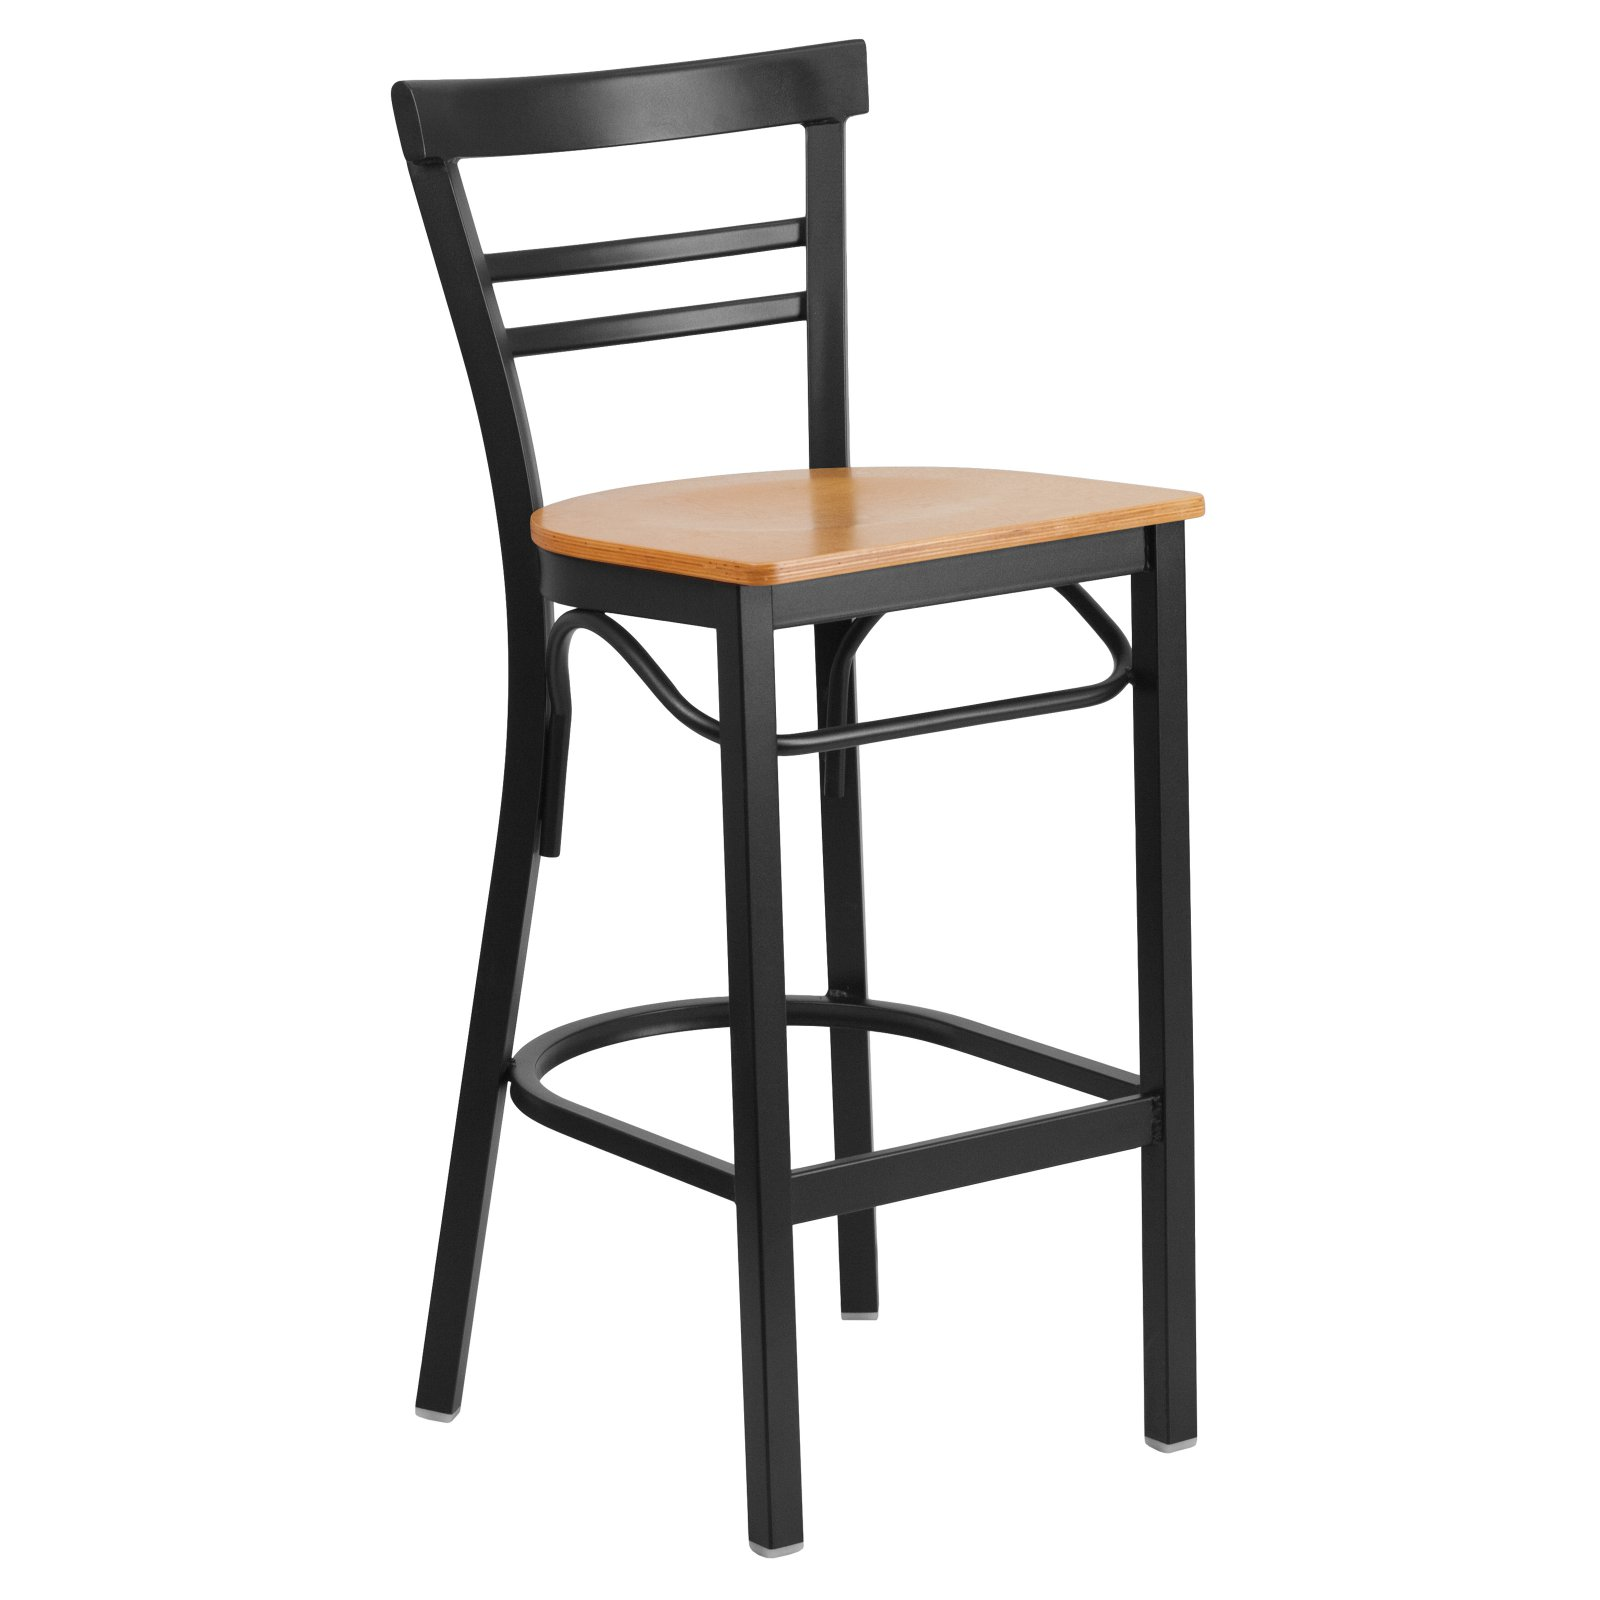 Flash Furniture HERCULES Series Black Ladder Back Metal Restaurant Barstool - Wood Seat Multiple Colors